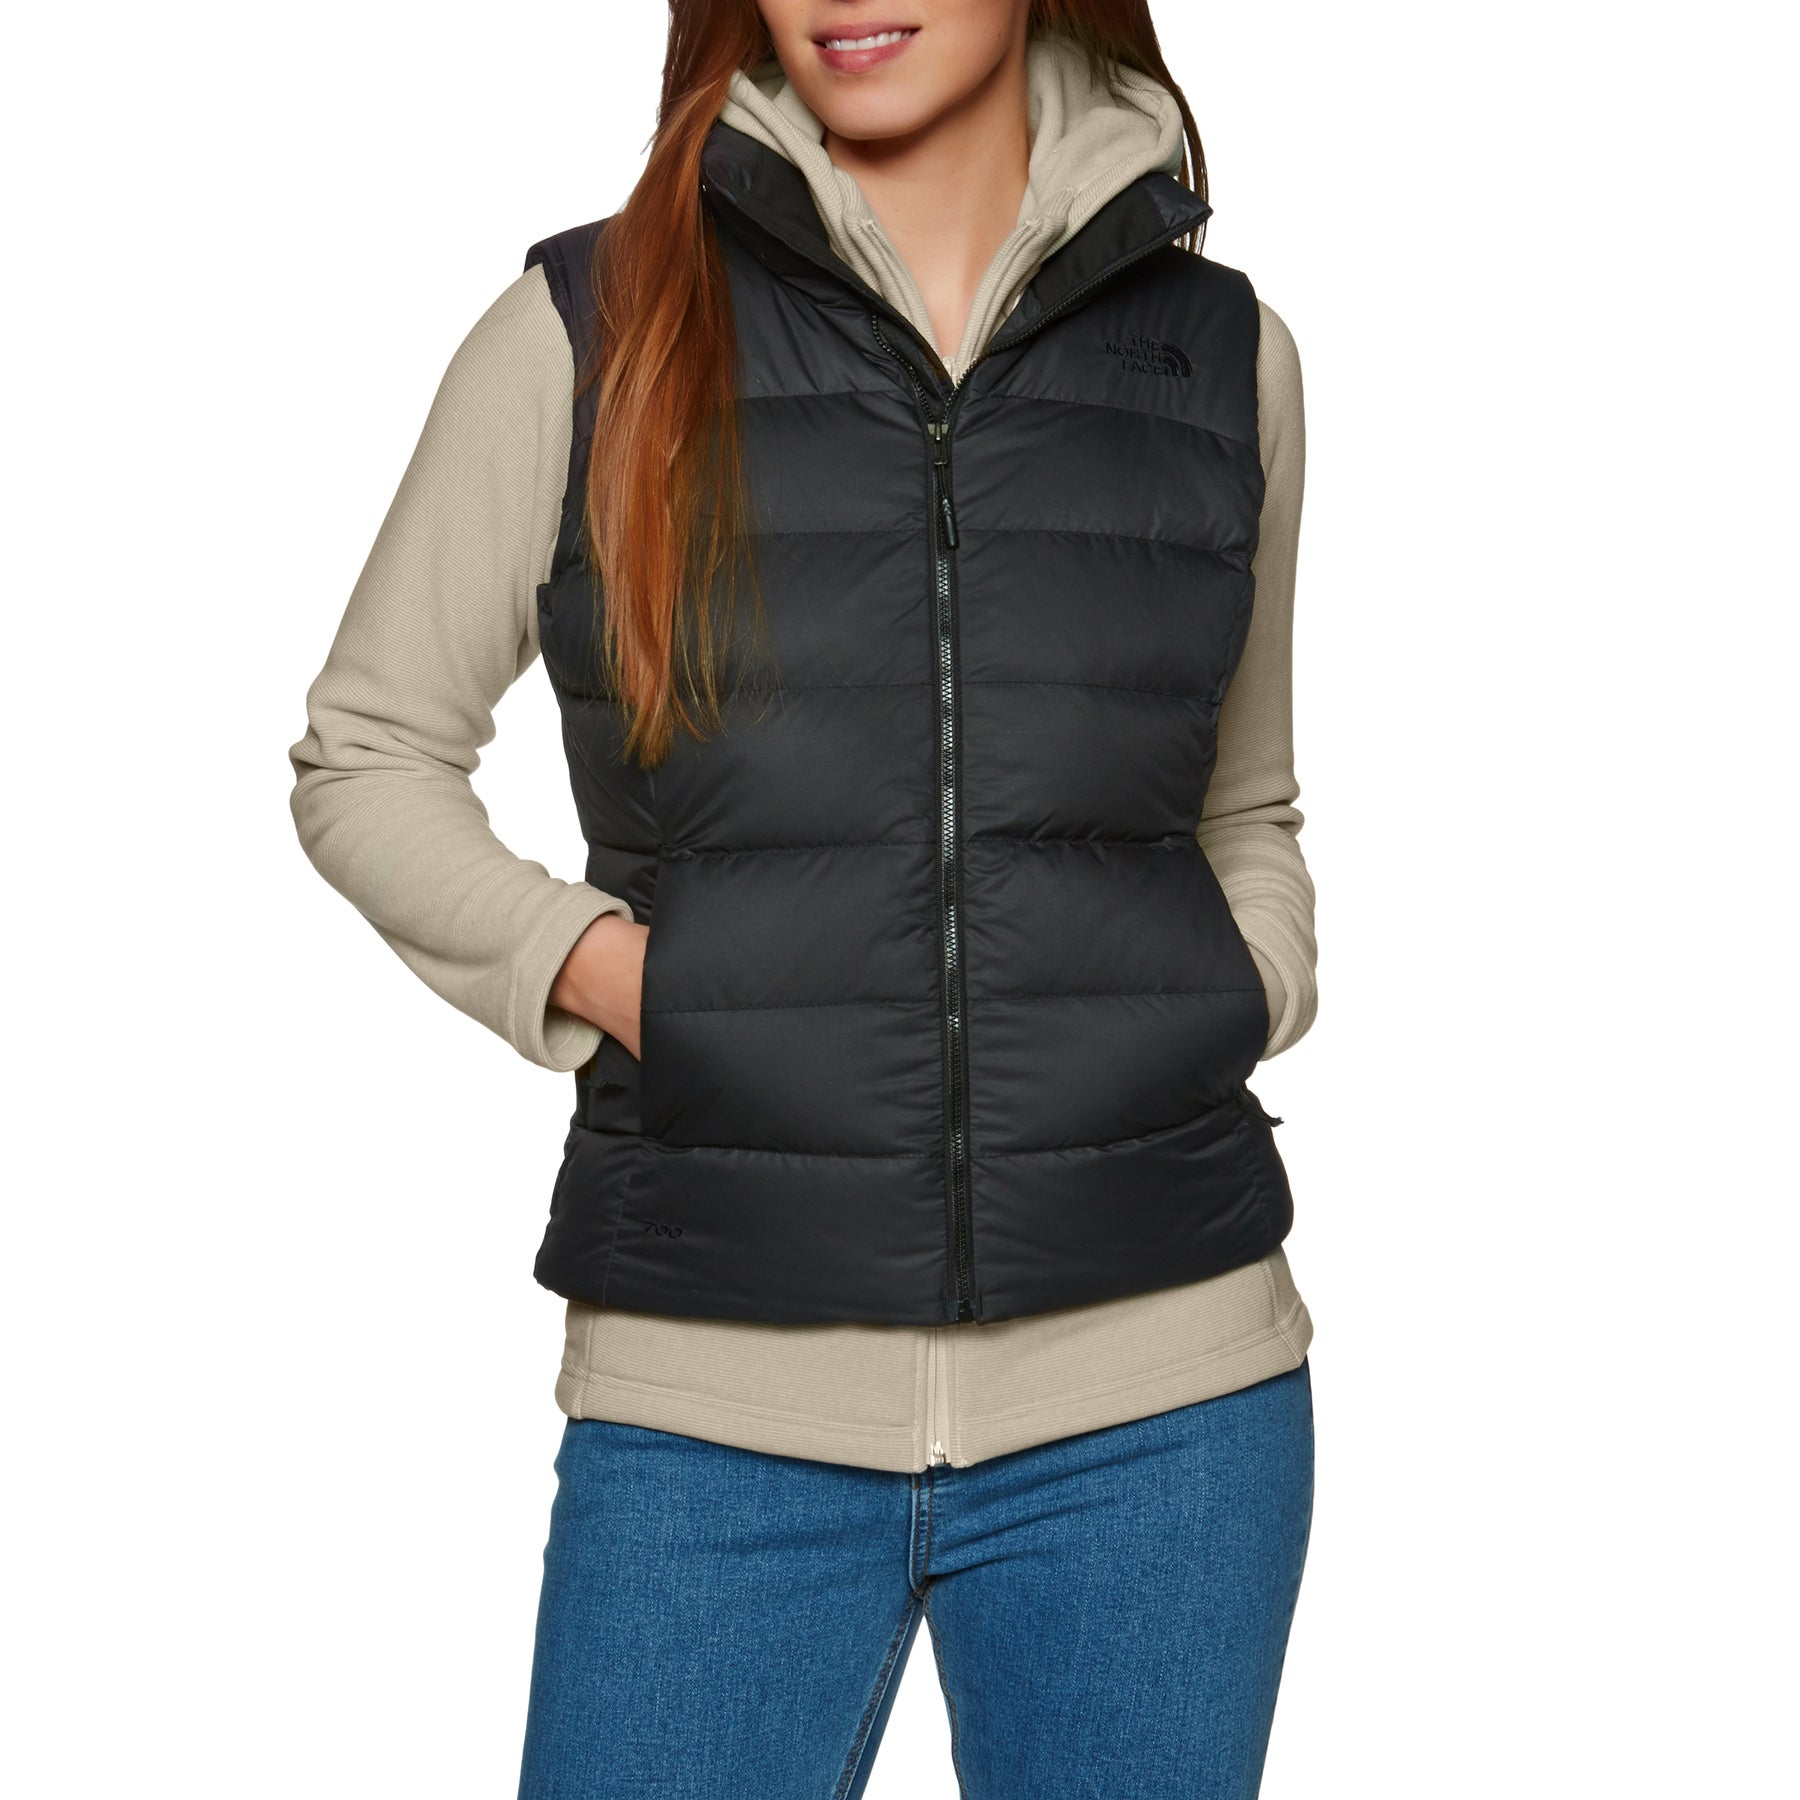 North Face Nuptse Womens Body Warmer - Tnf Black Foil Grey